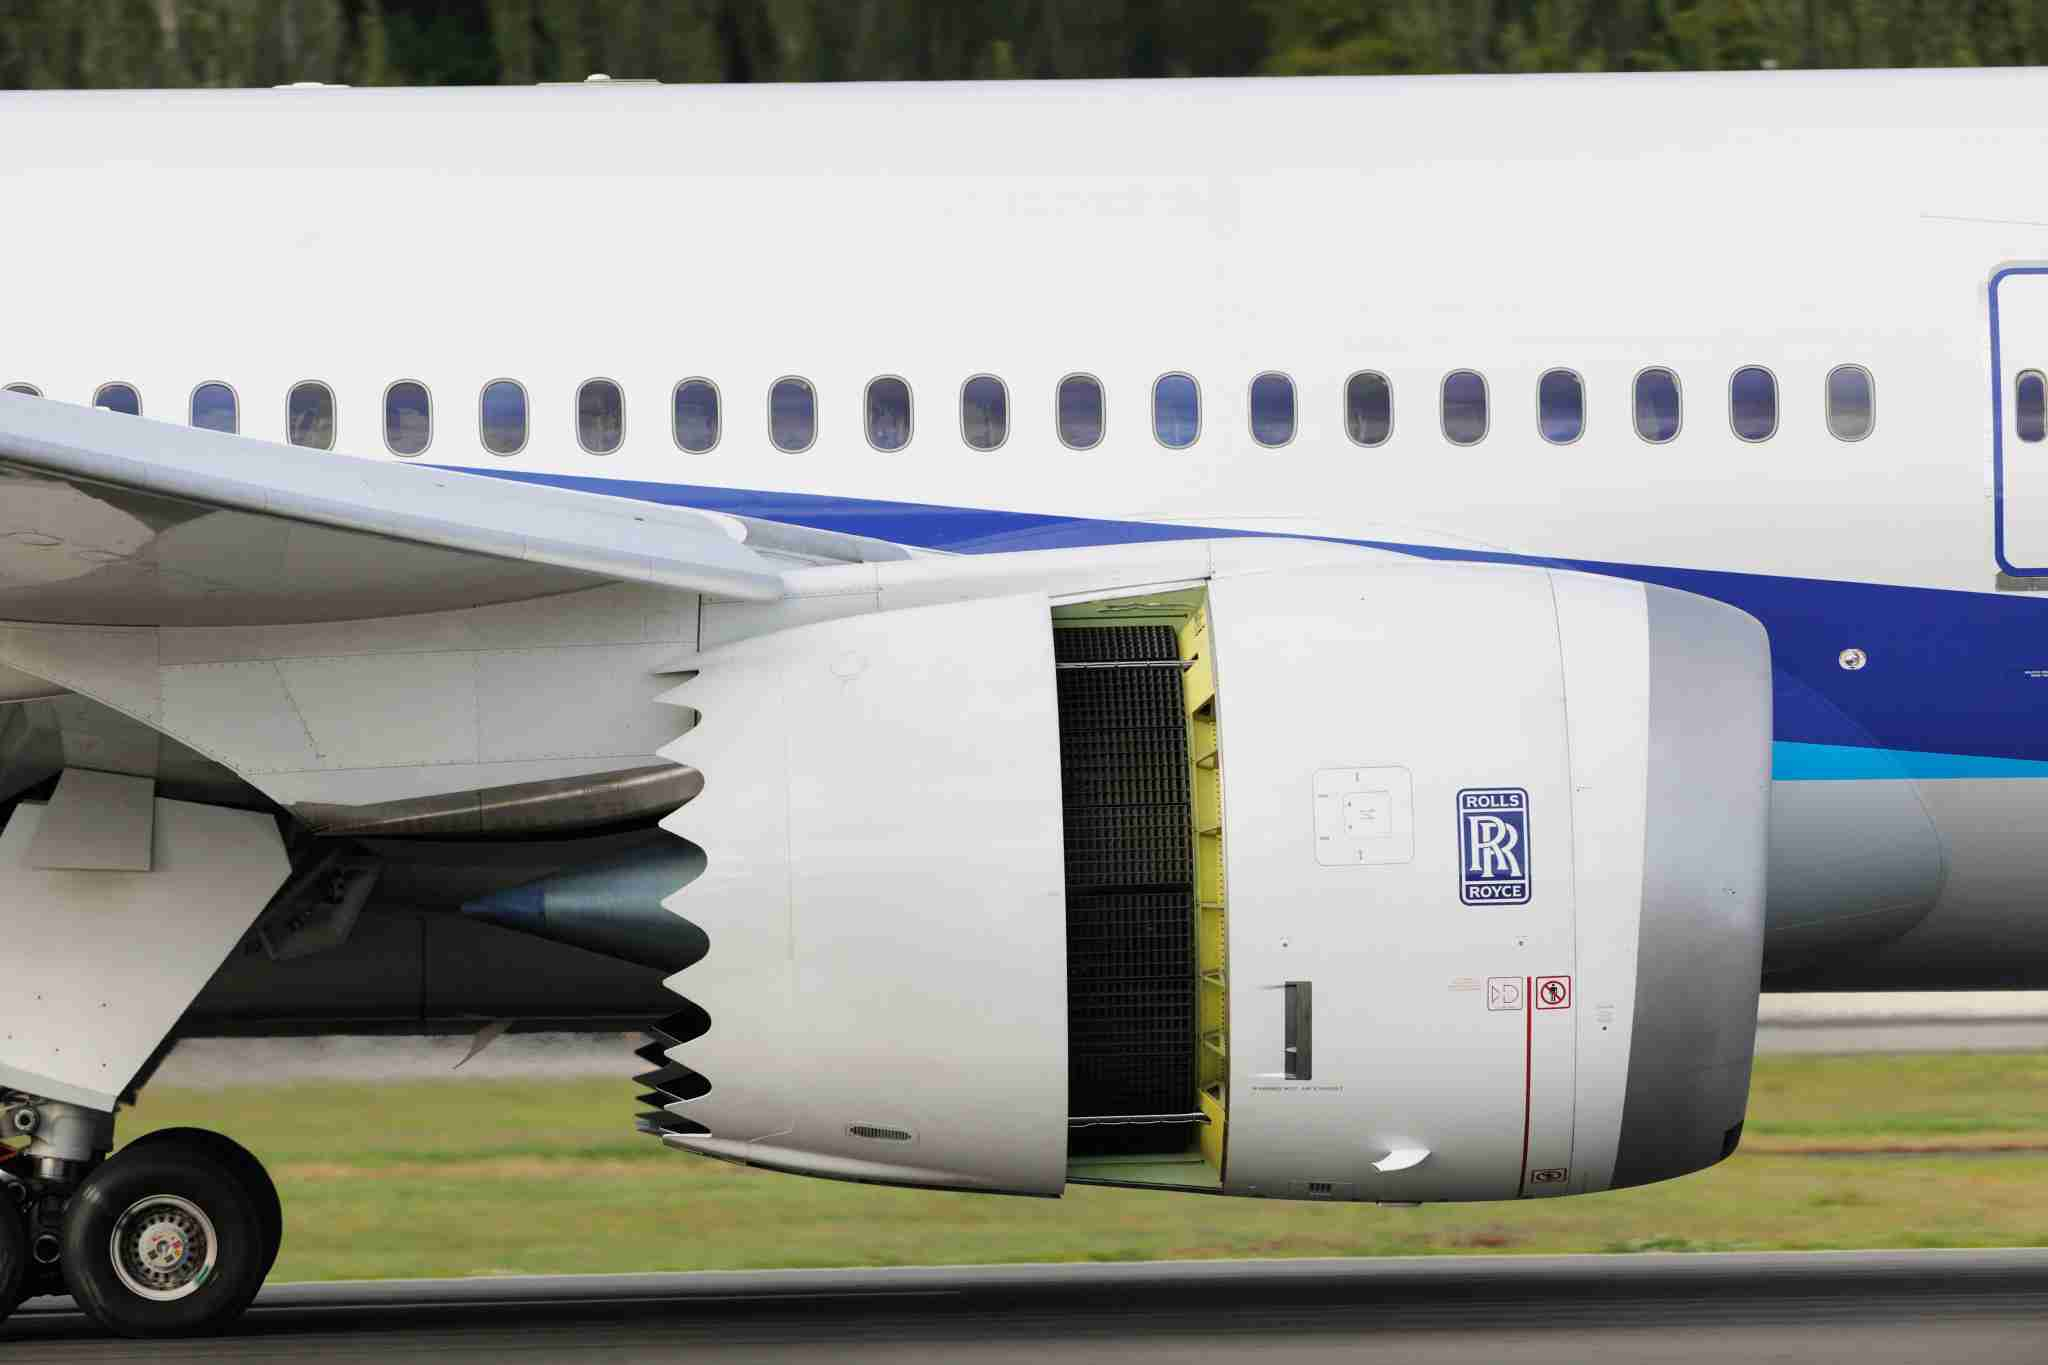 Air-brakes on Rolls-Royce Trent 1000 engine on ANA All Nippon Airways Boeing 787-8 Dreamliner landing. (Photo by: Aviation-images.com/UIG via Getty Images)